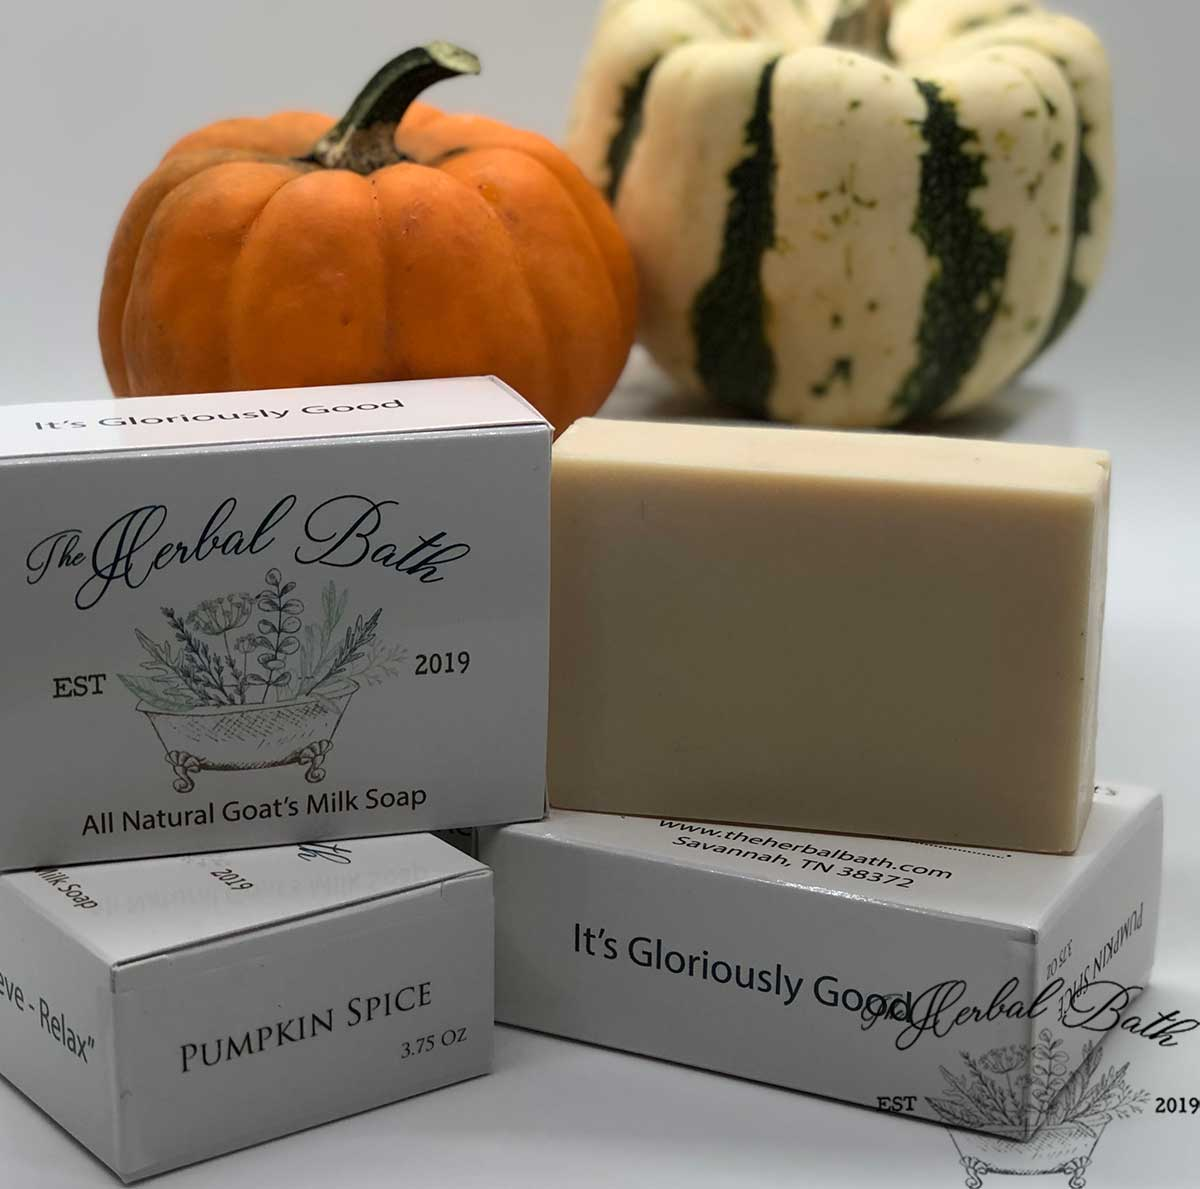 Pumpkin Spice Latte' Soap